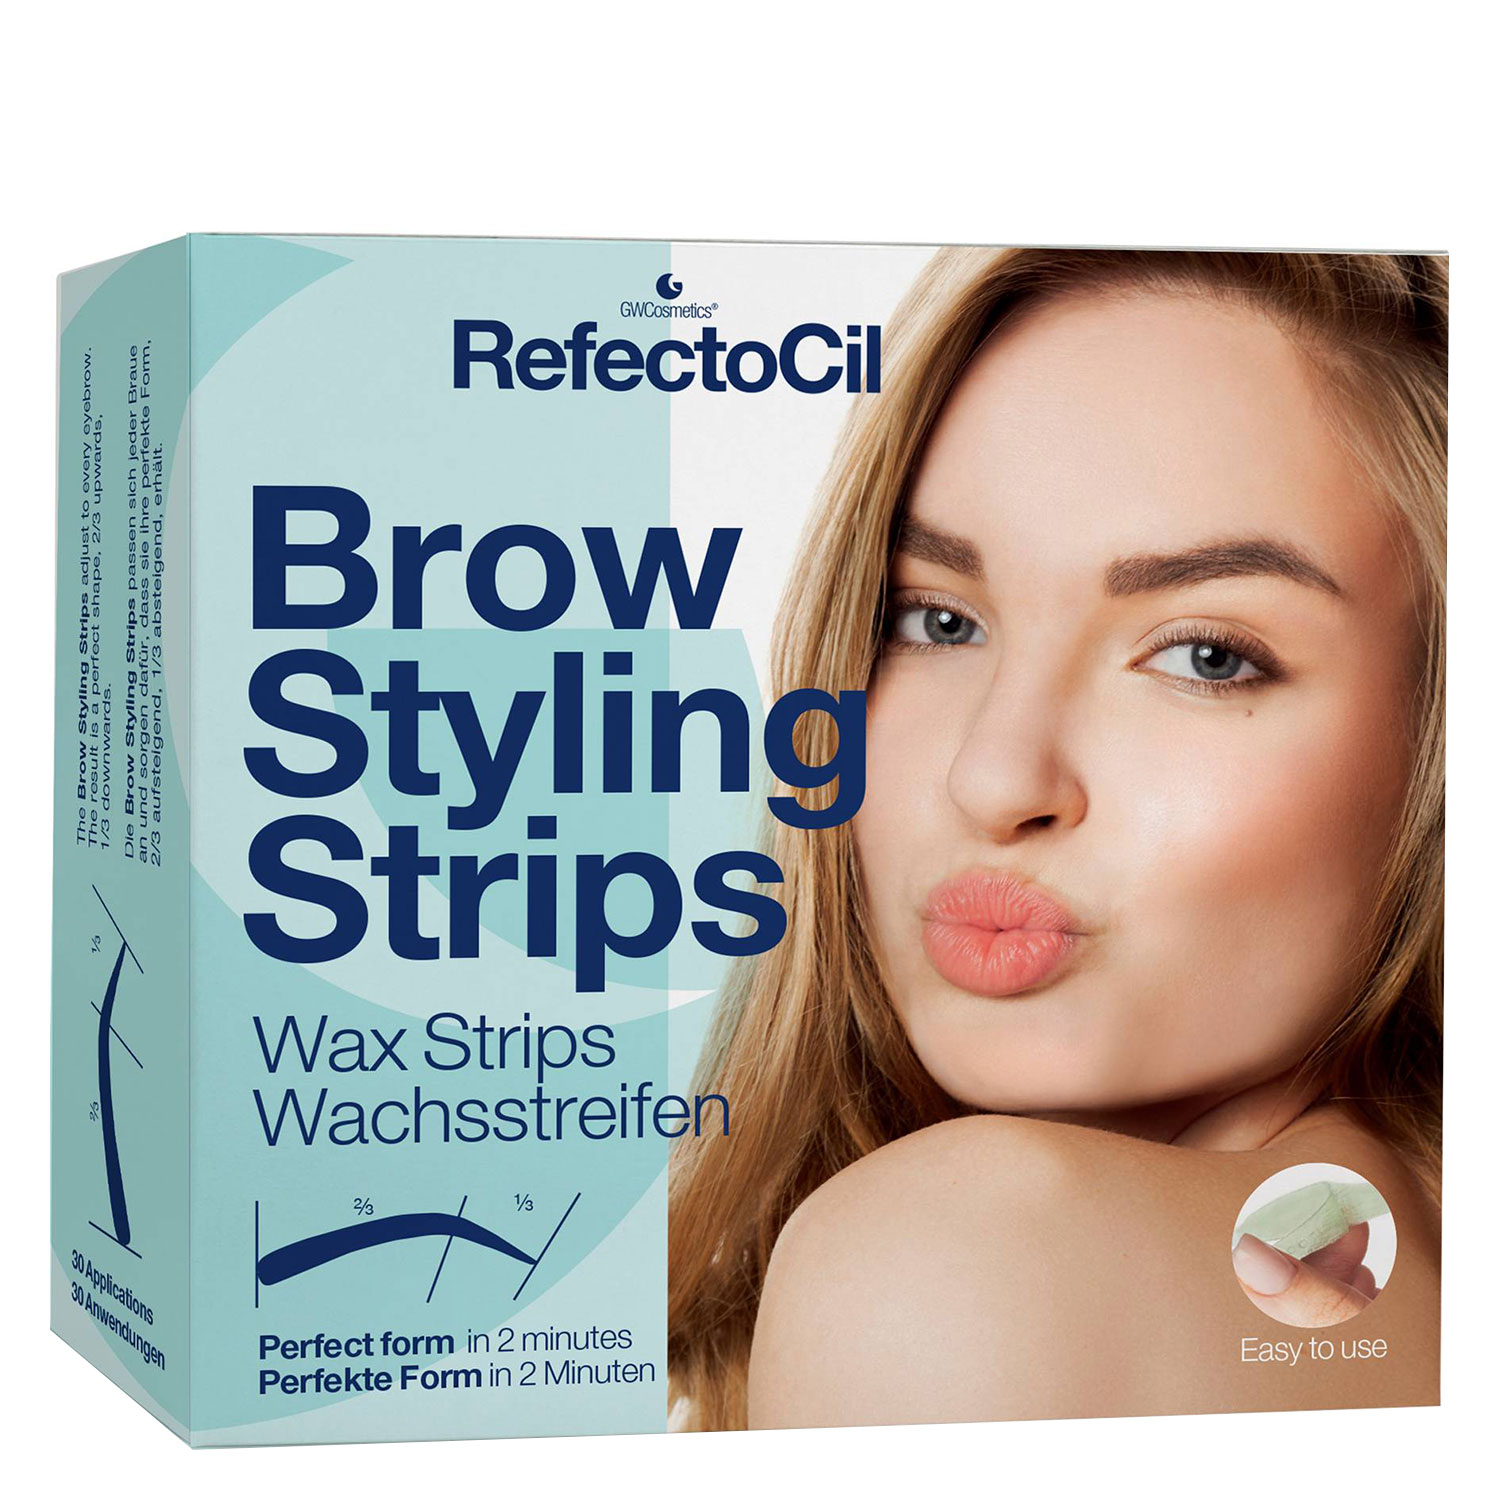 RefectoCil - Brow Styling Strips